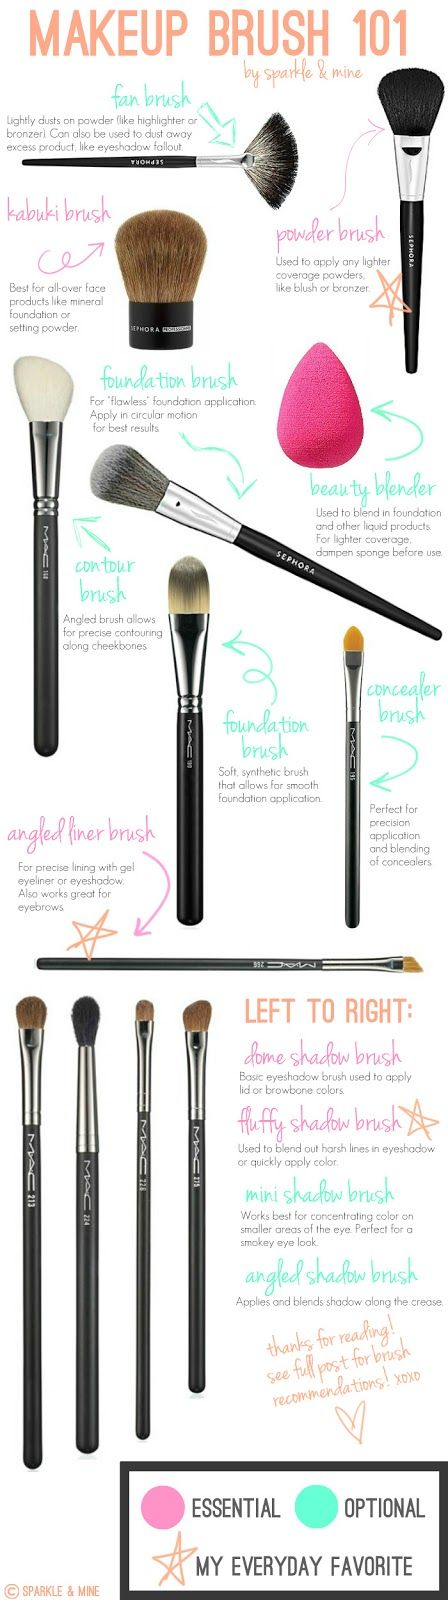 Makeup Brush 101 | sparkle & mine